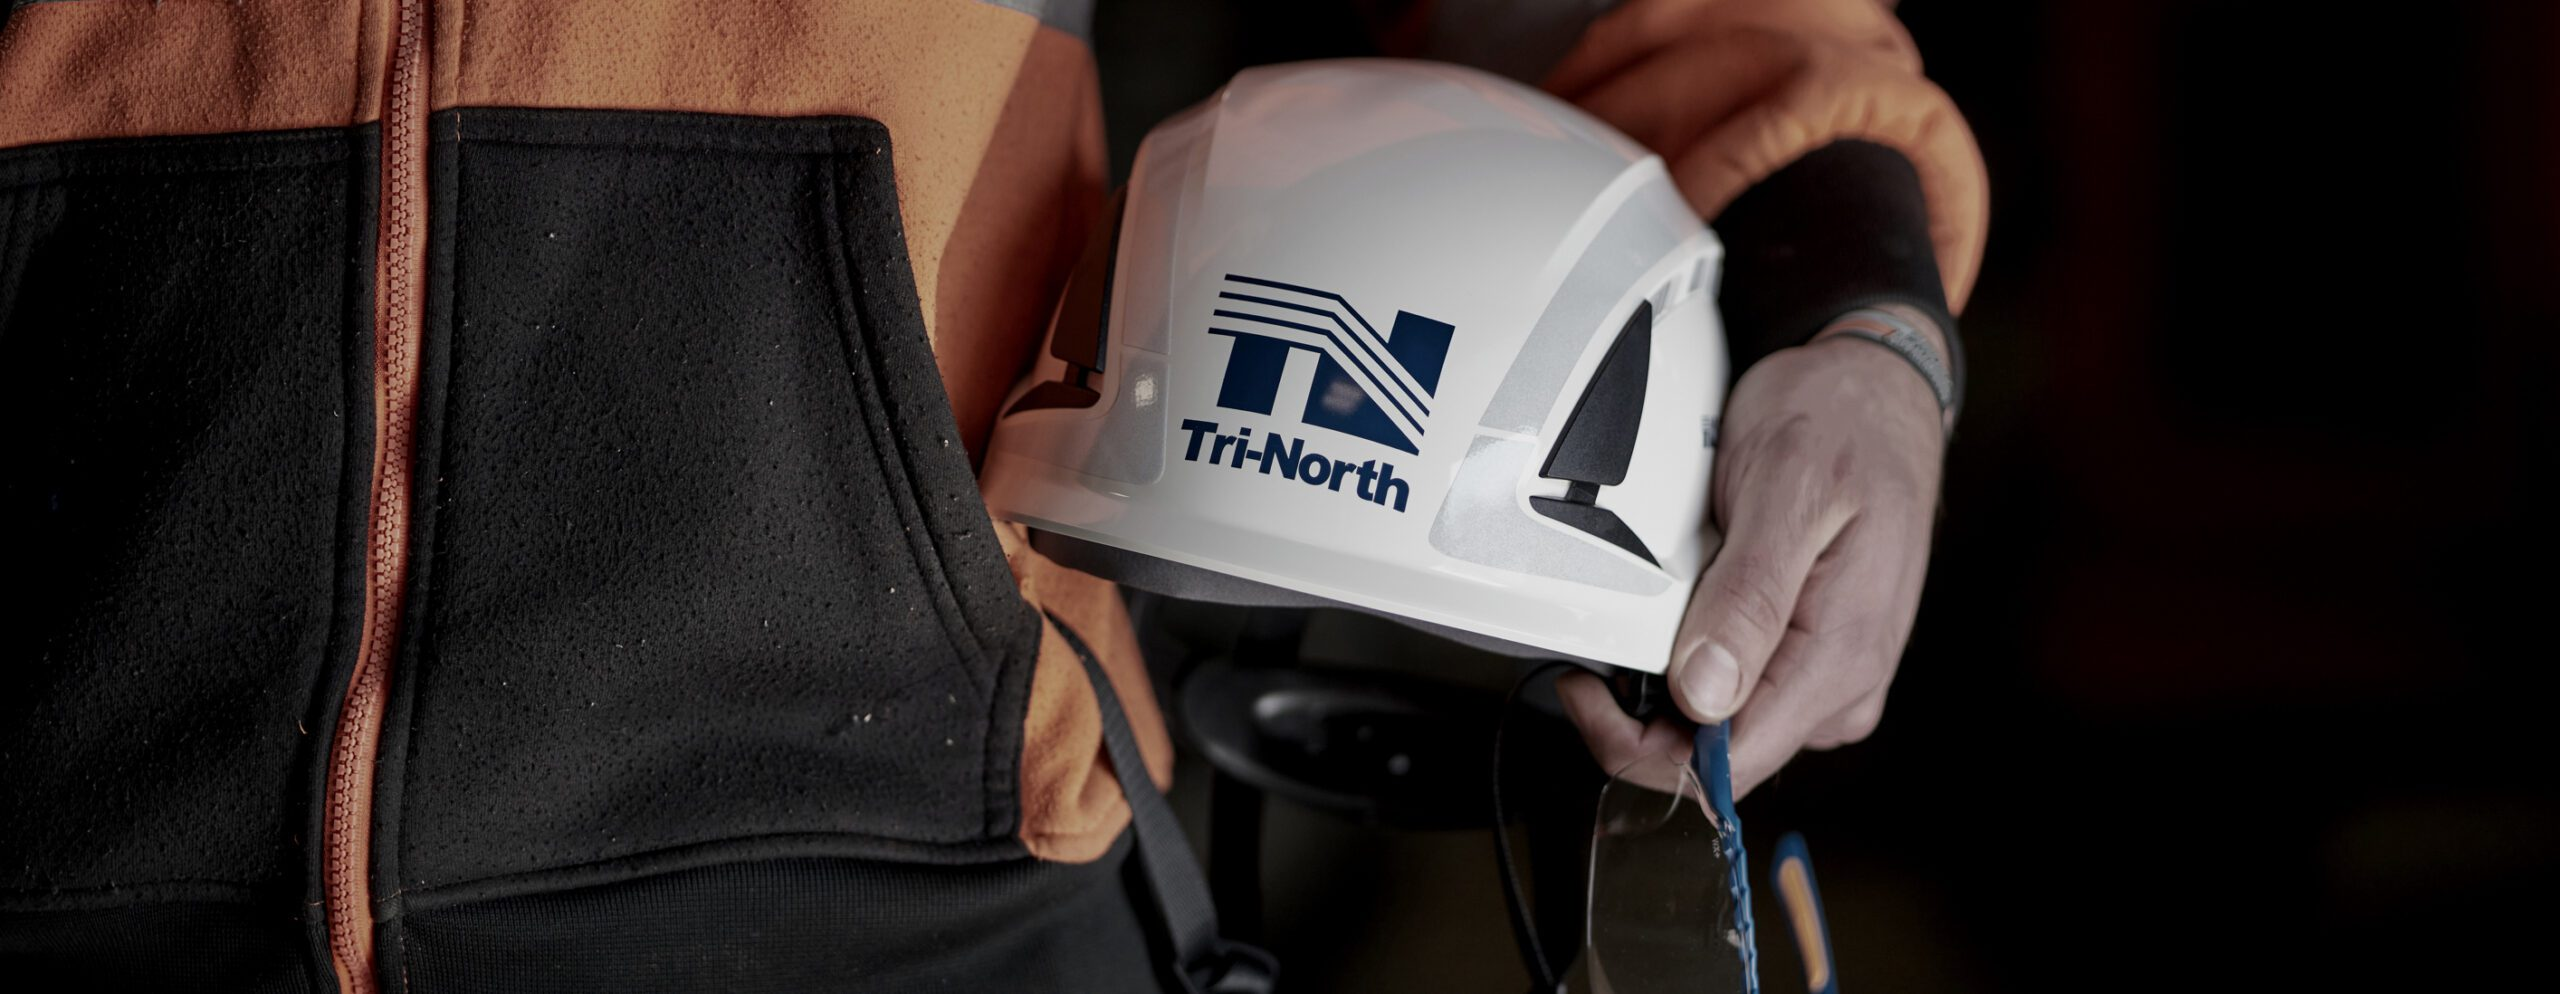 Close up view of a construction crew member holding a Tri-North hard hat